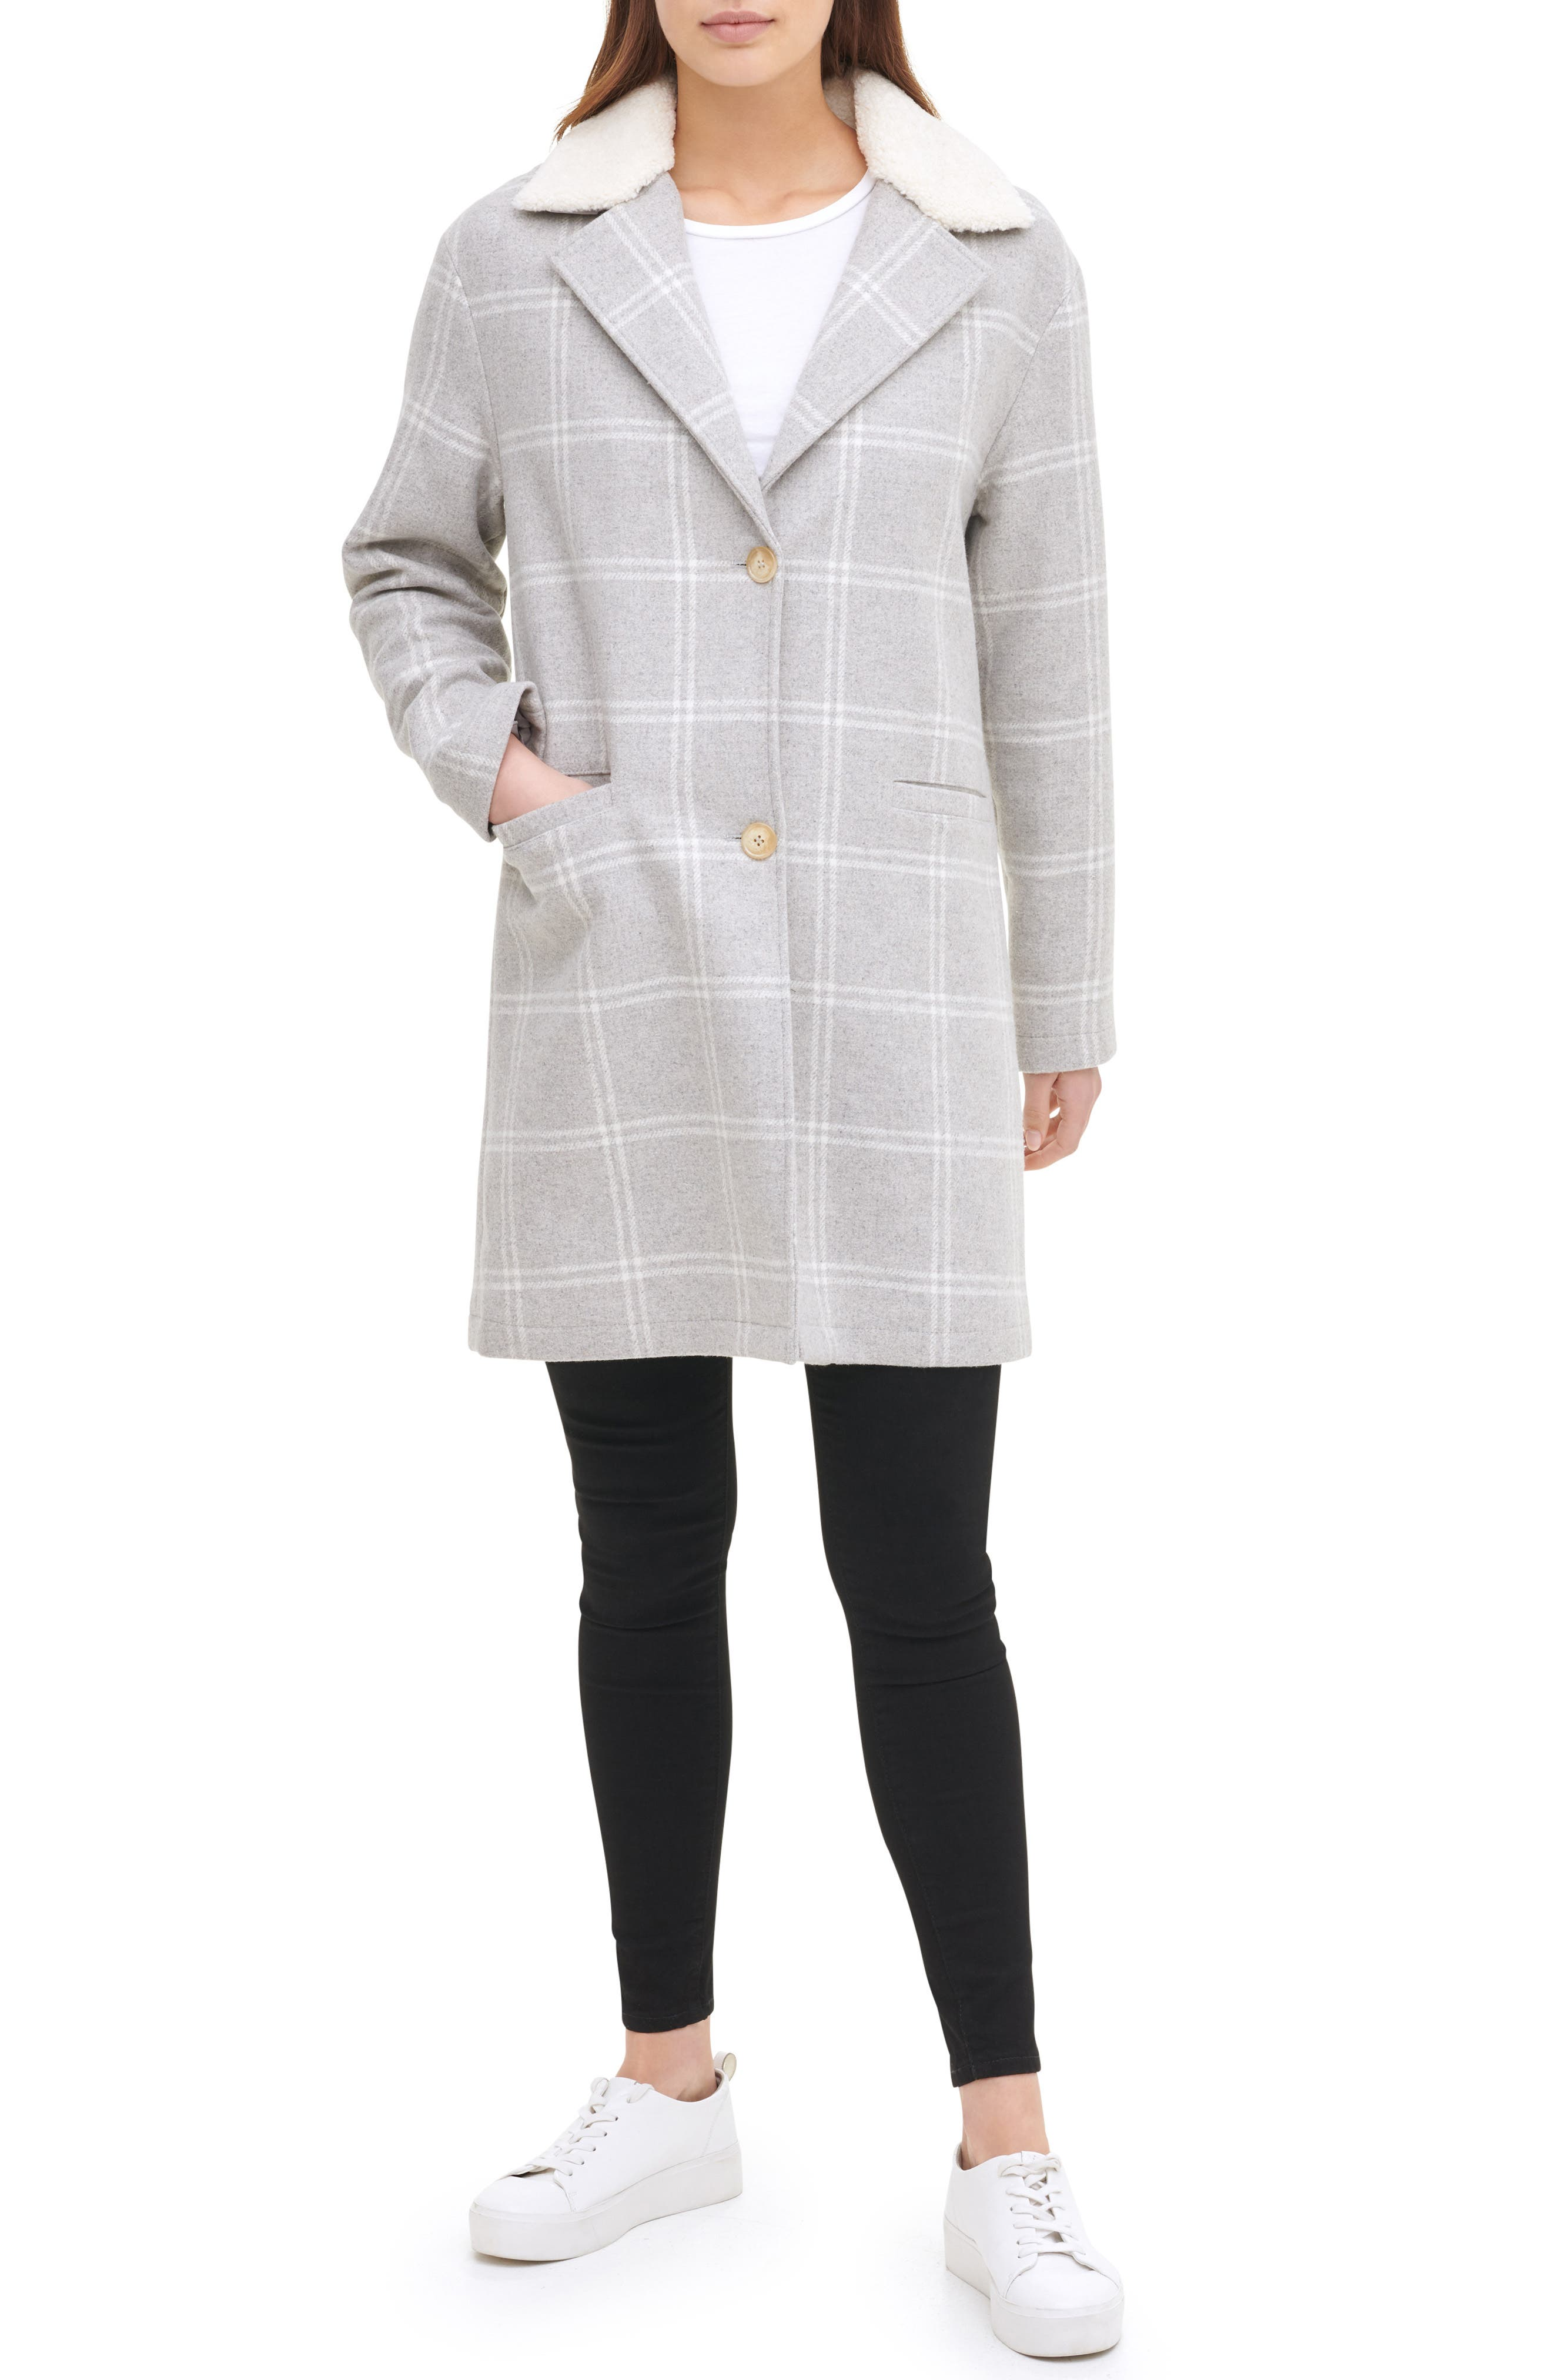 Levi's® Wool Top Coat with Faux Shearling Collar | Nordstrom